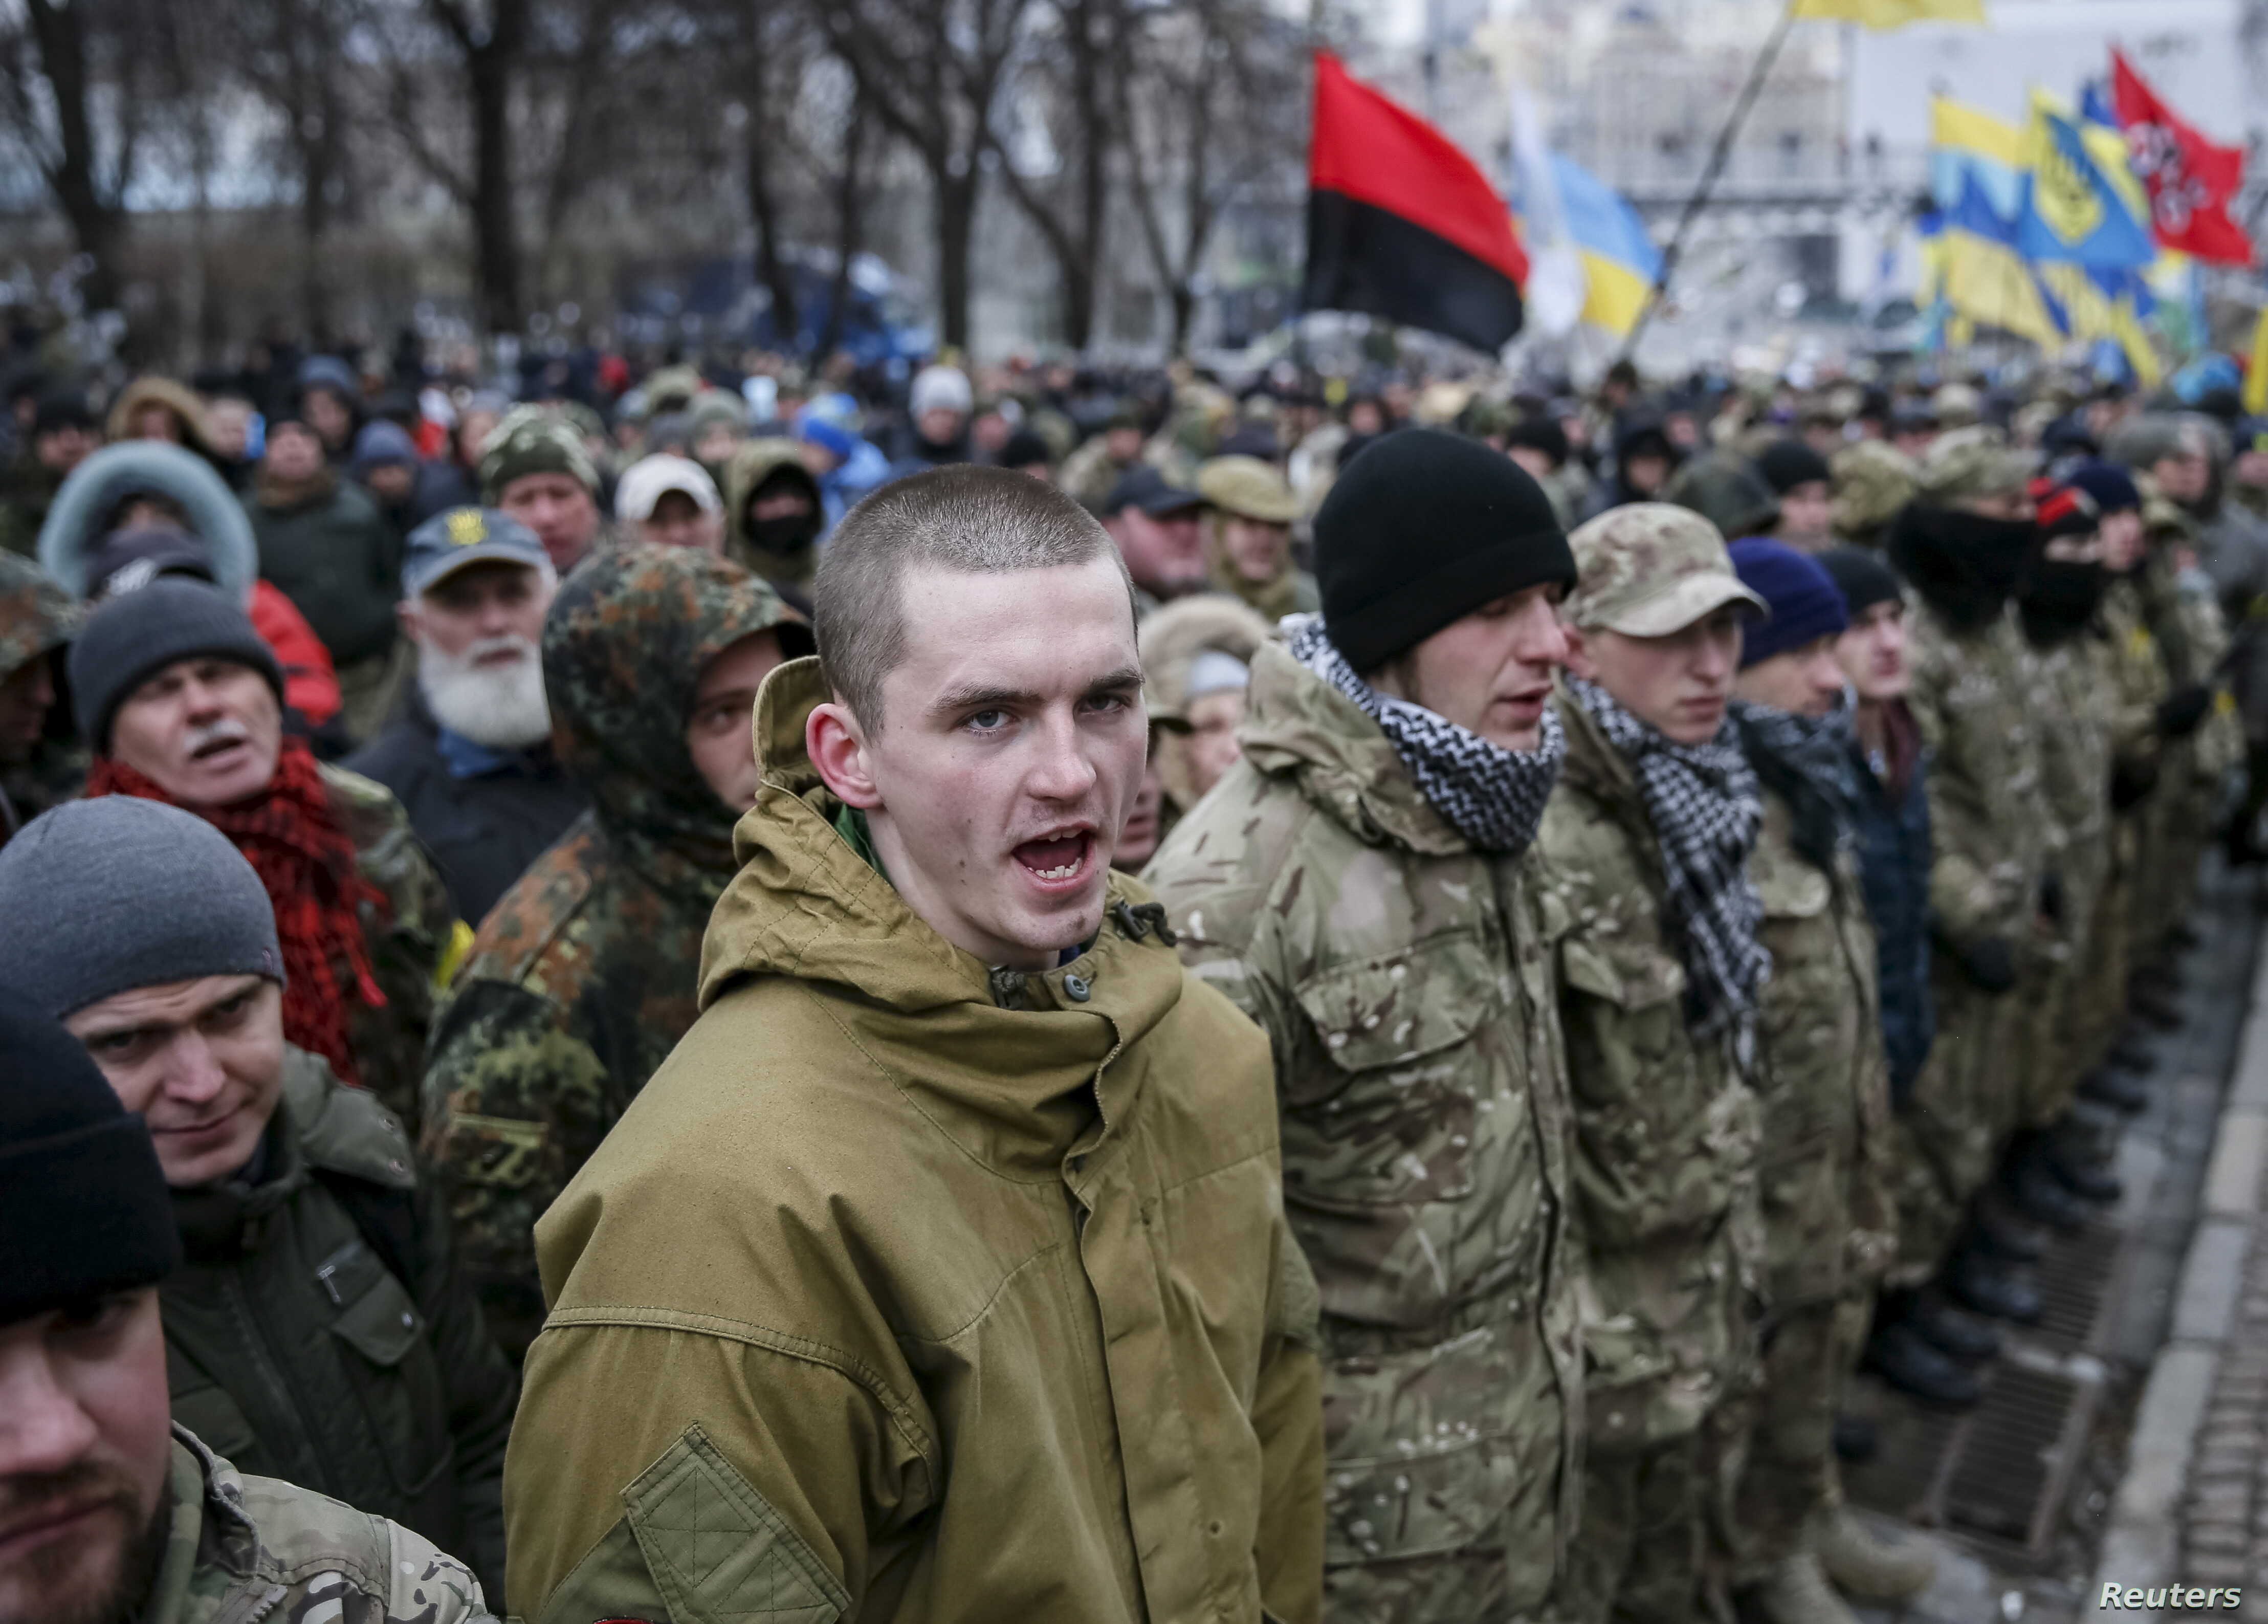 Members of self-defense battalions take part in a rally to commemorate demonstrators who were killed during the Maidan protests in 2014 in Kiev, Ukraine, Feb. 20, 2016.